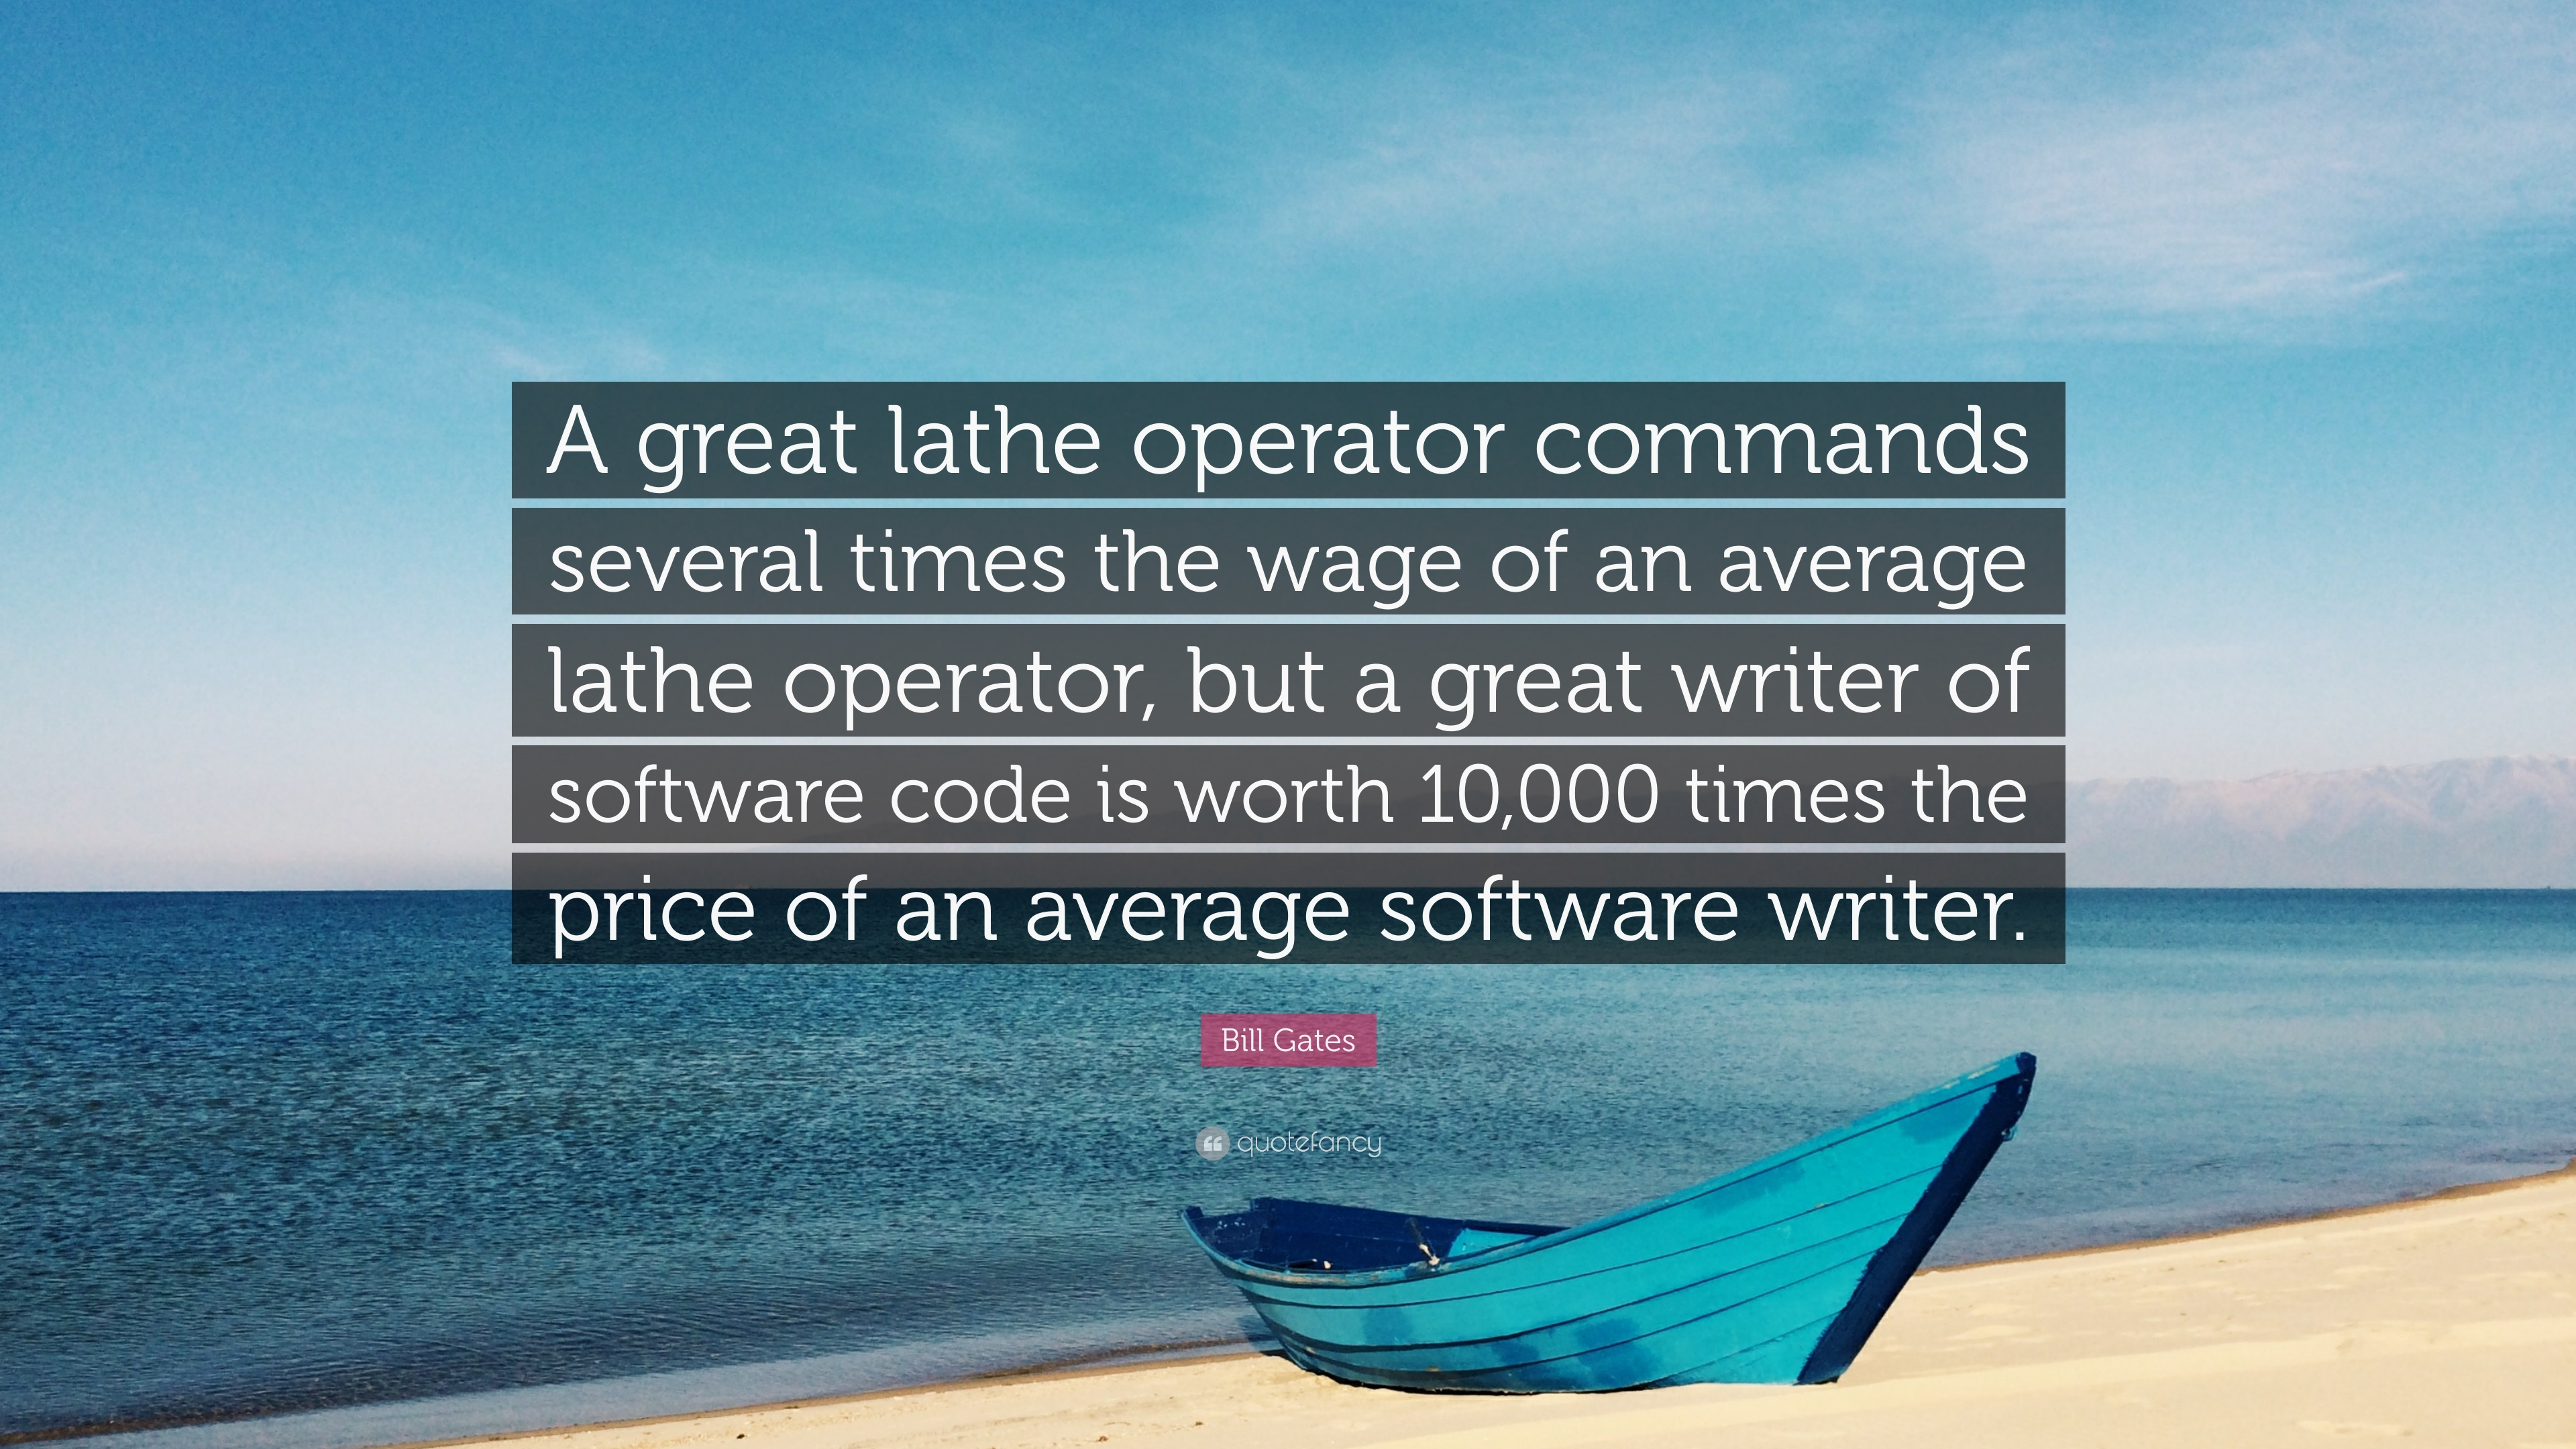 """A great lathe operator commands several times the wage of an average lathe operator, but a great writer of software code is worth 10,000 times the price of an average software writer."""